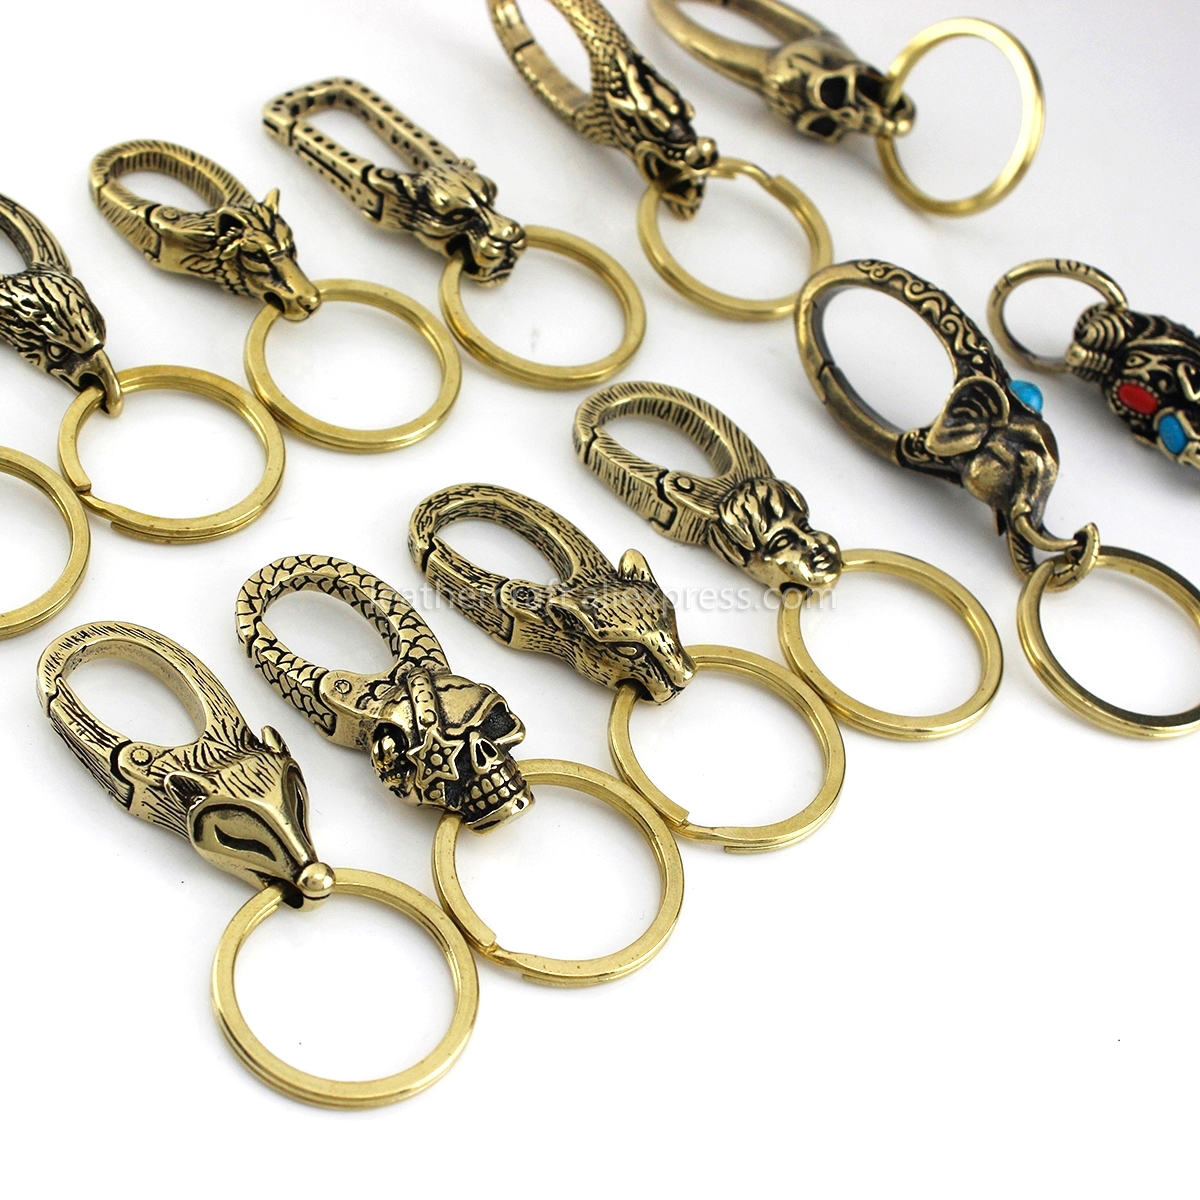 Solid Brass S hook Belt clip O ring DIY Fob Key Wallet chain Leather Craft